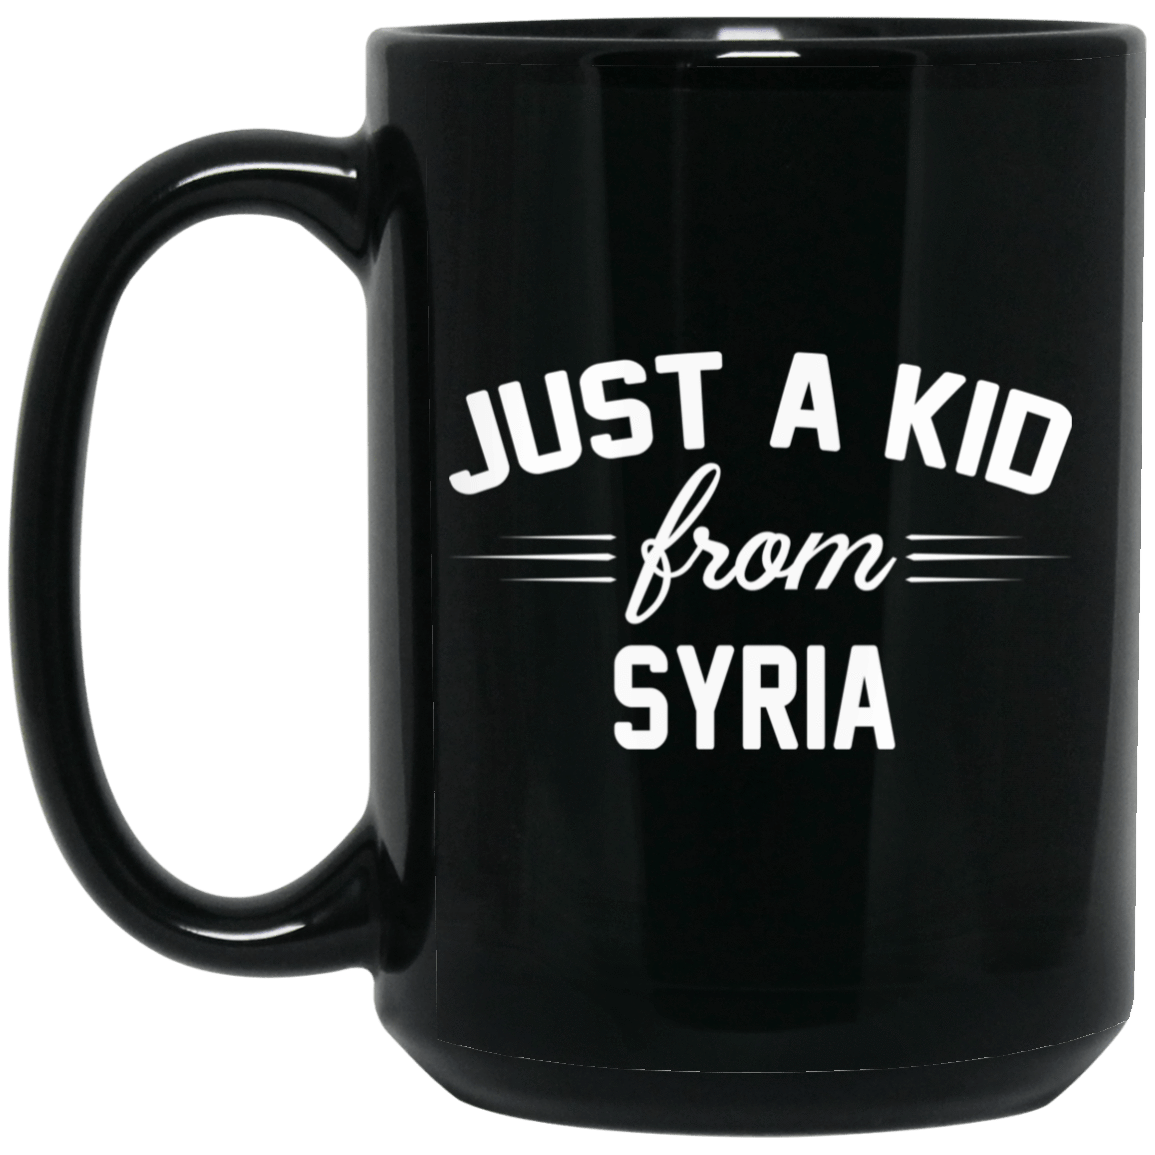 Just A Kid Store | Syria Mug 1066-10182-72111100-49311 - Tee Ript